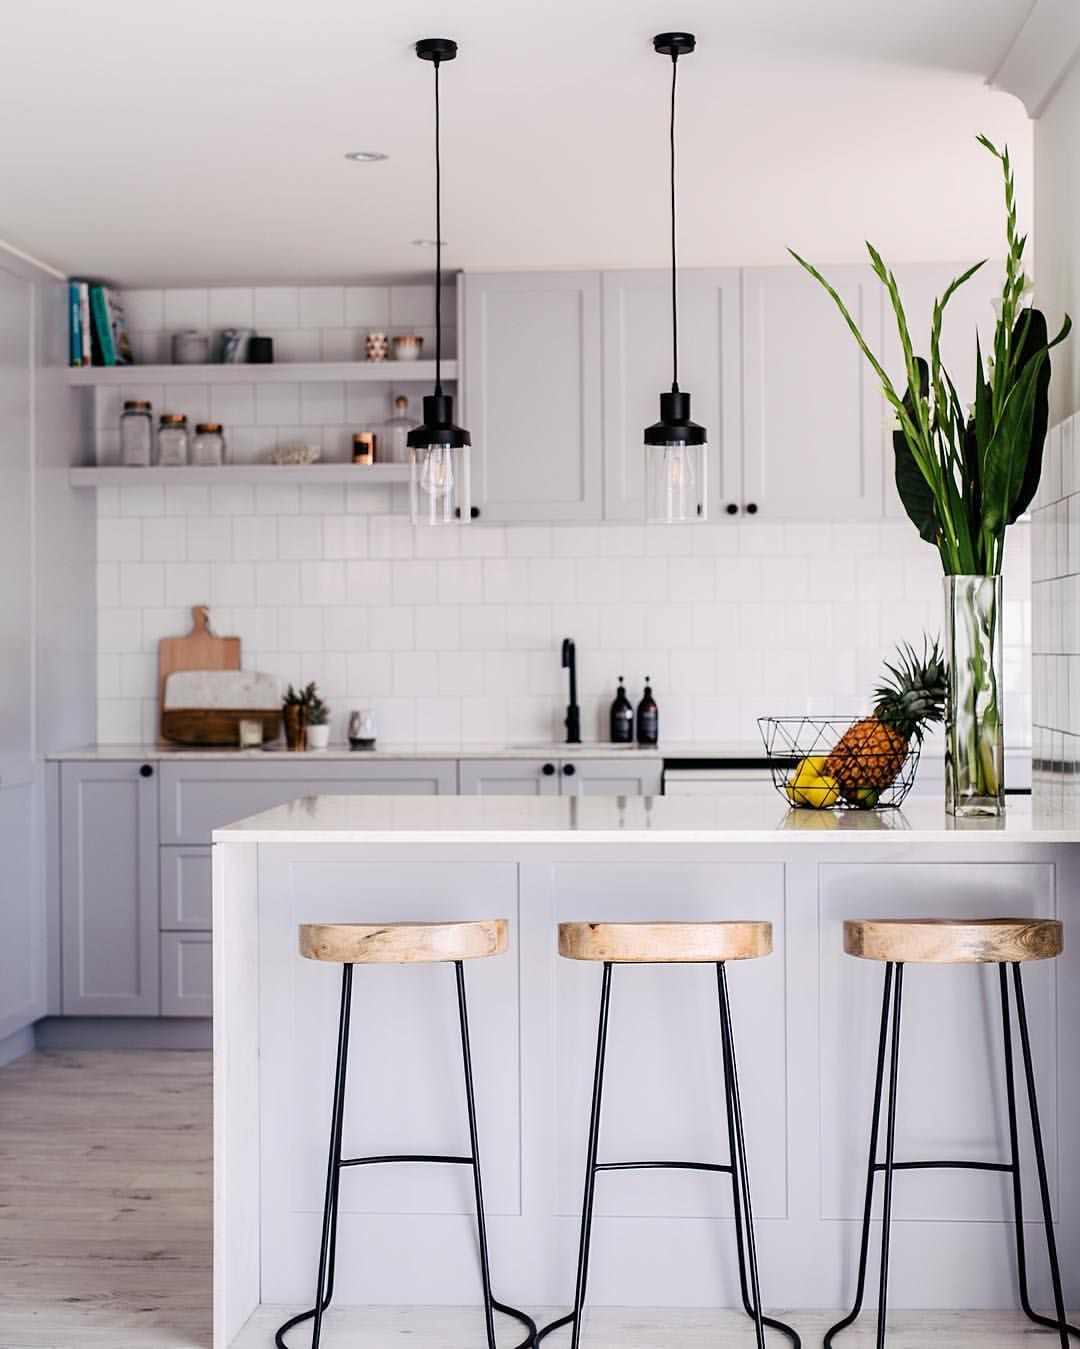 White Kitchen Floating Shelves: Grey And White Kitchen, High Stools, Wire Legs, Black